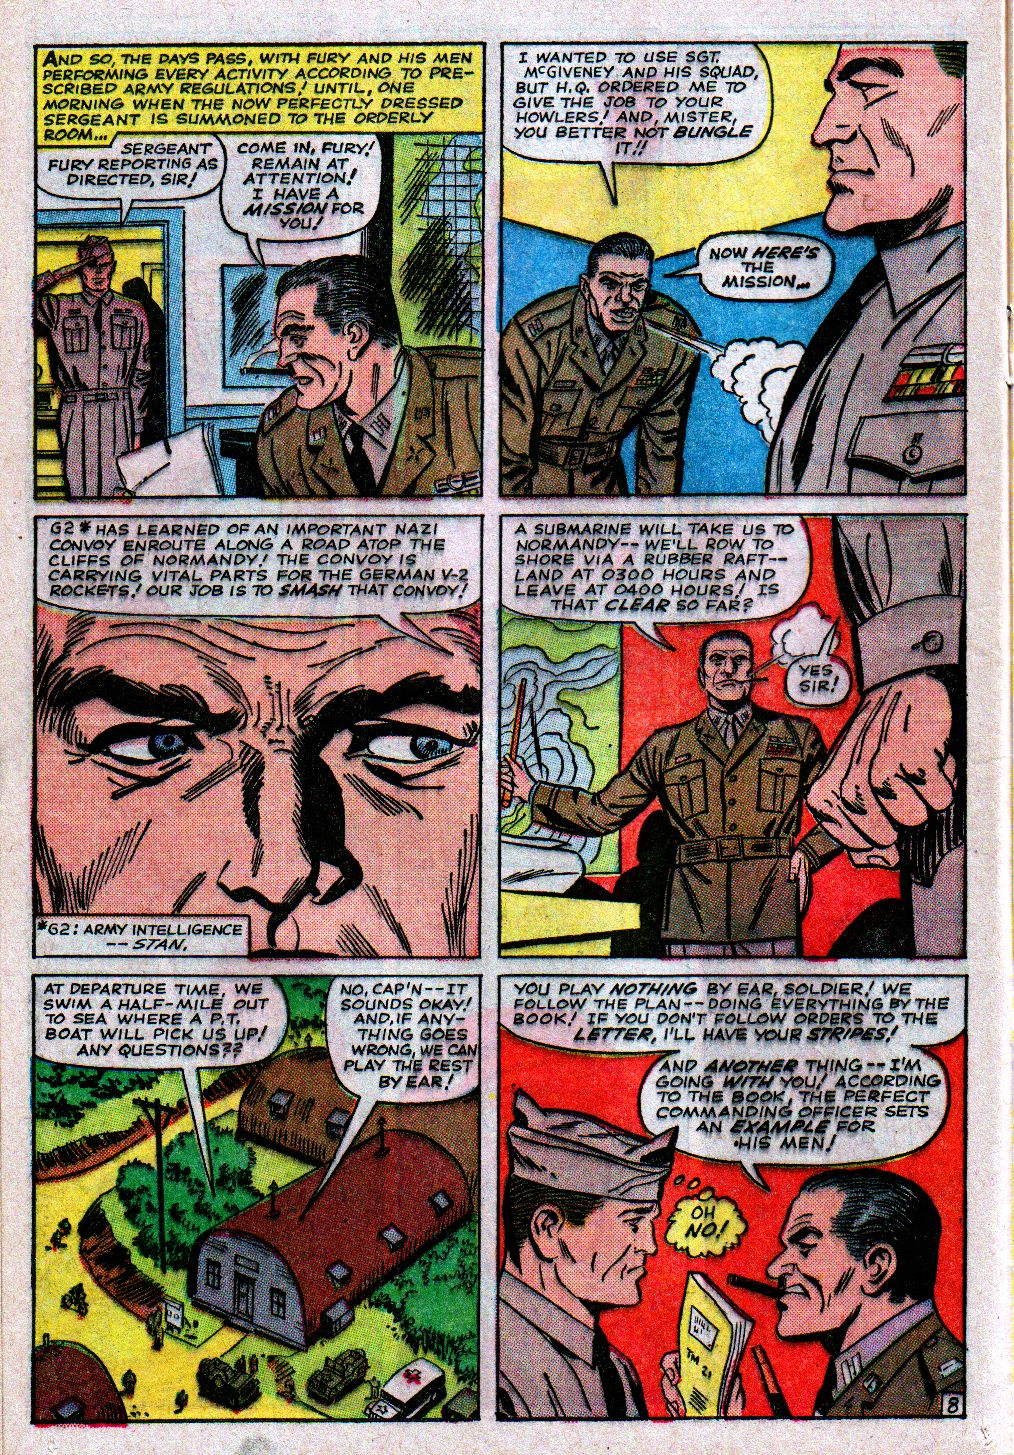 Read online Sgt. Fury comic -  Issue #11 - 12